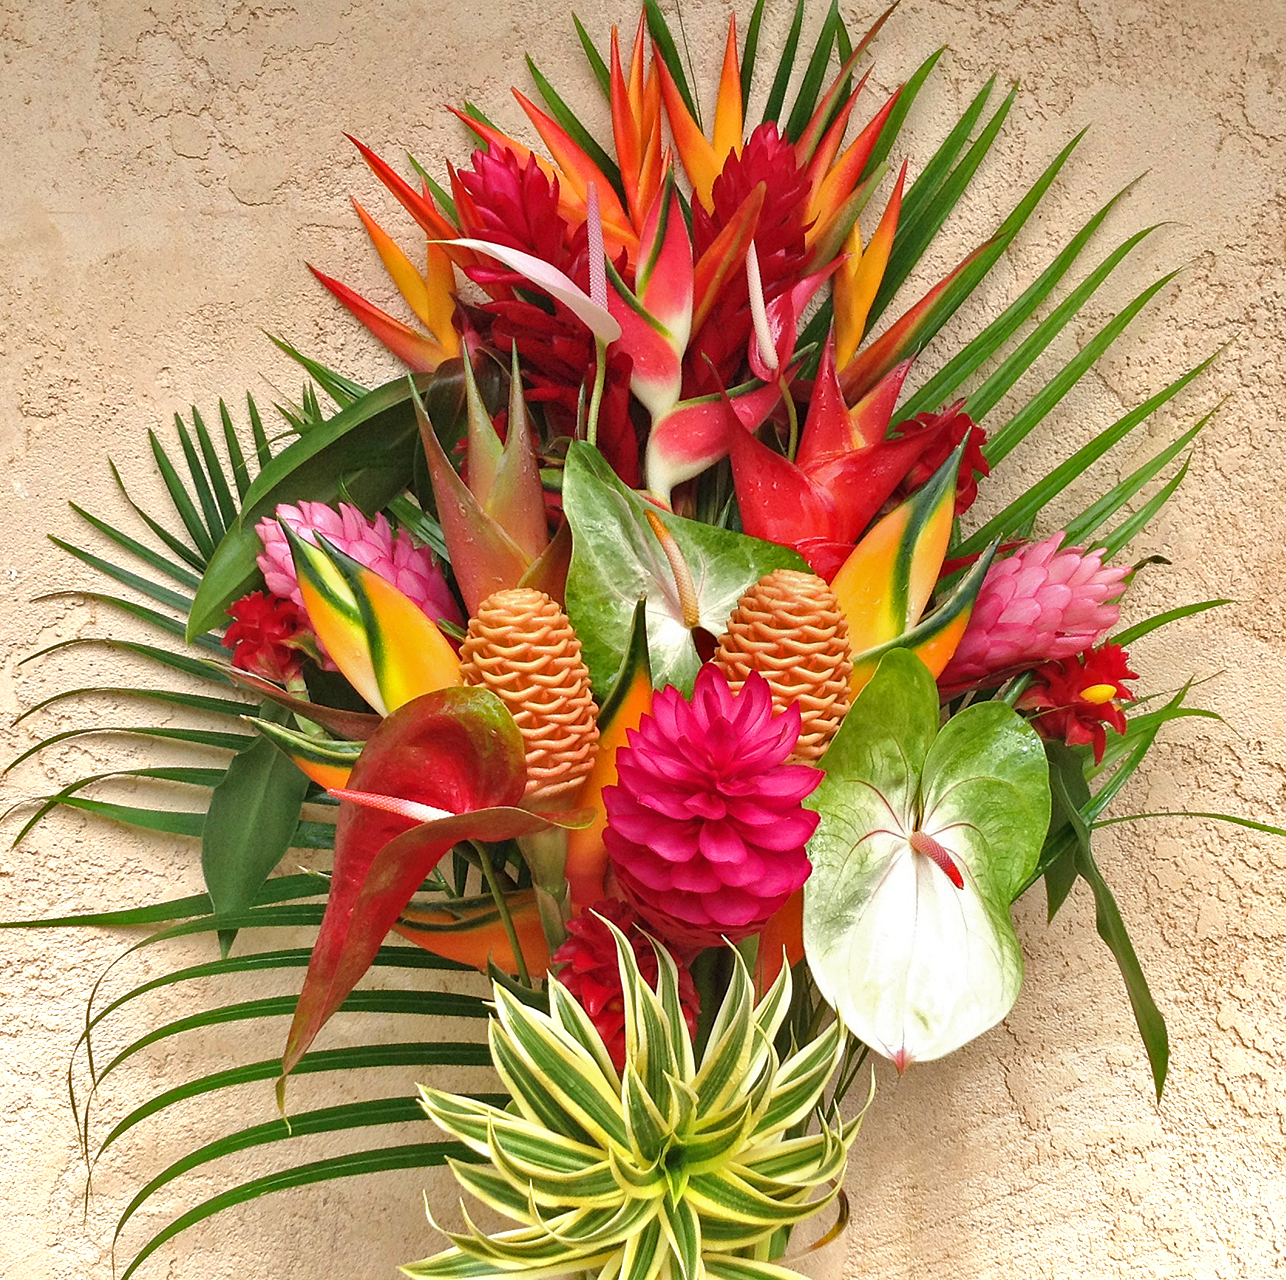 Best Of Kauai Tropical Flower Arrangement Features Lots Of Amazing